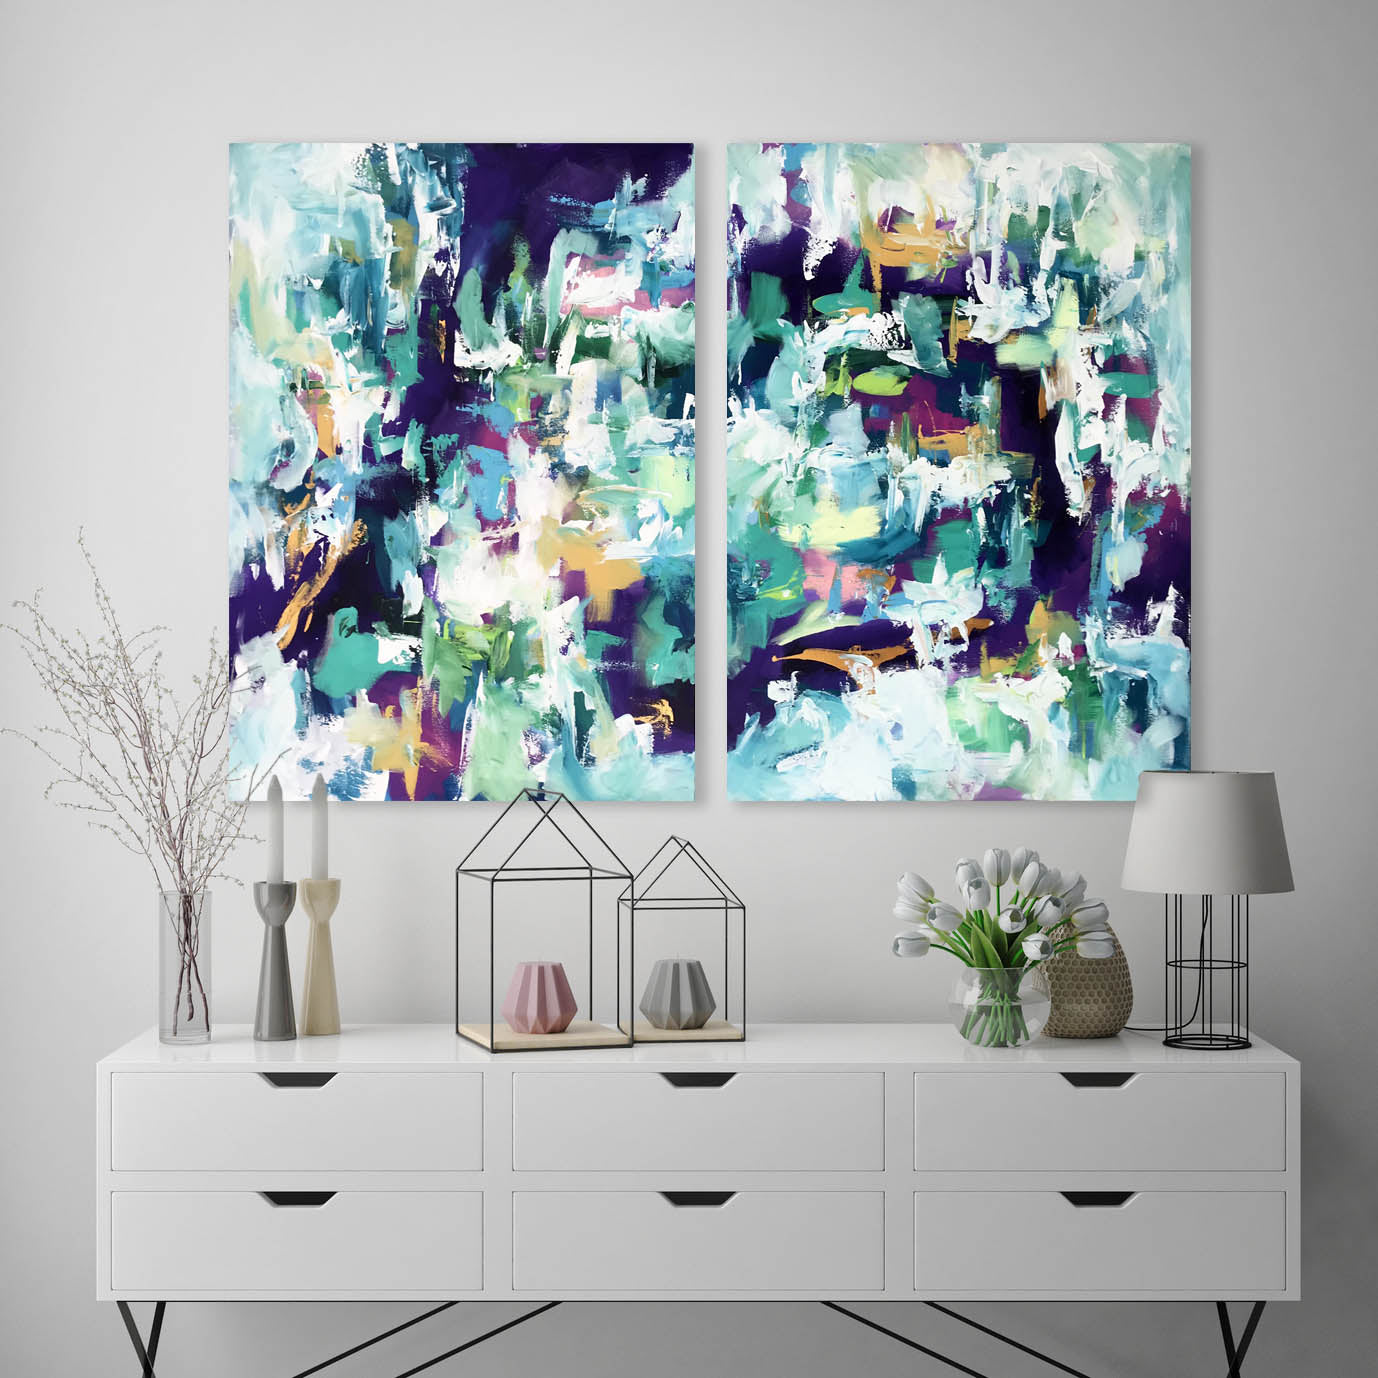 The Finer Things - 152x102 cm - Diptych Original Painting-OmarObaid.com